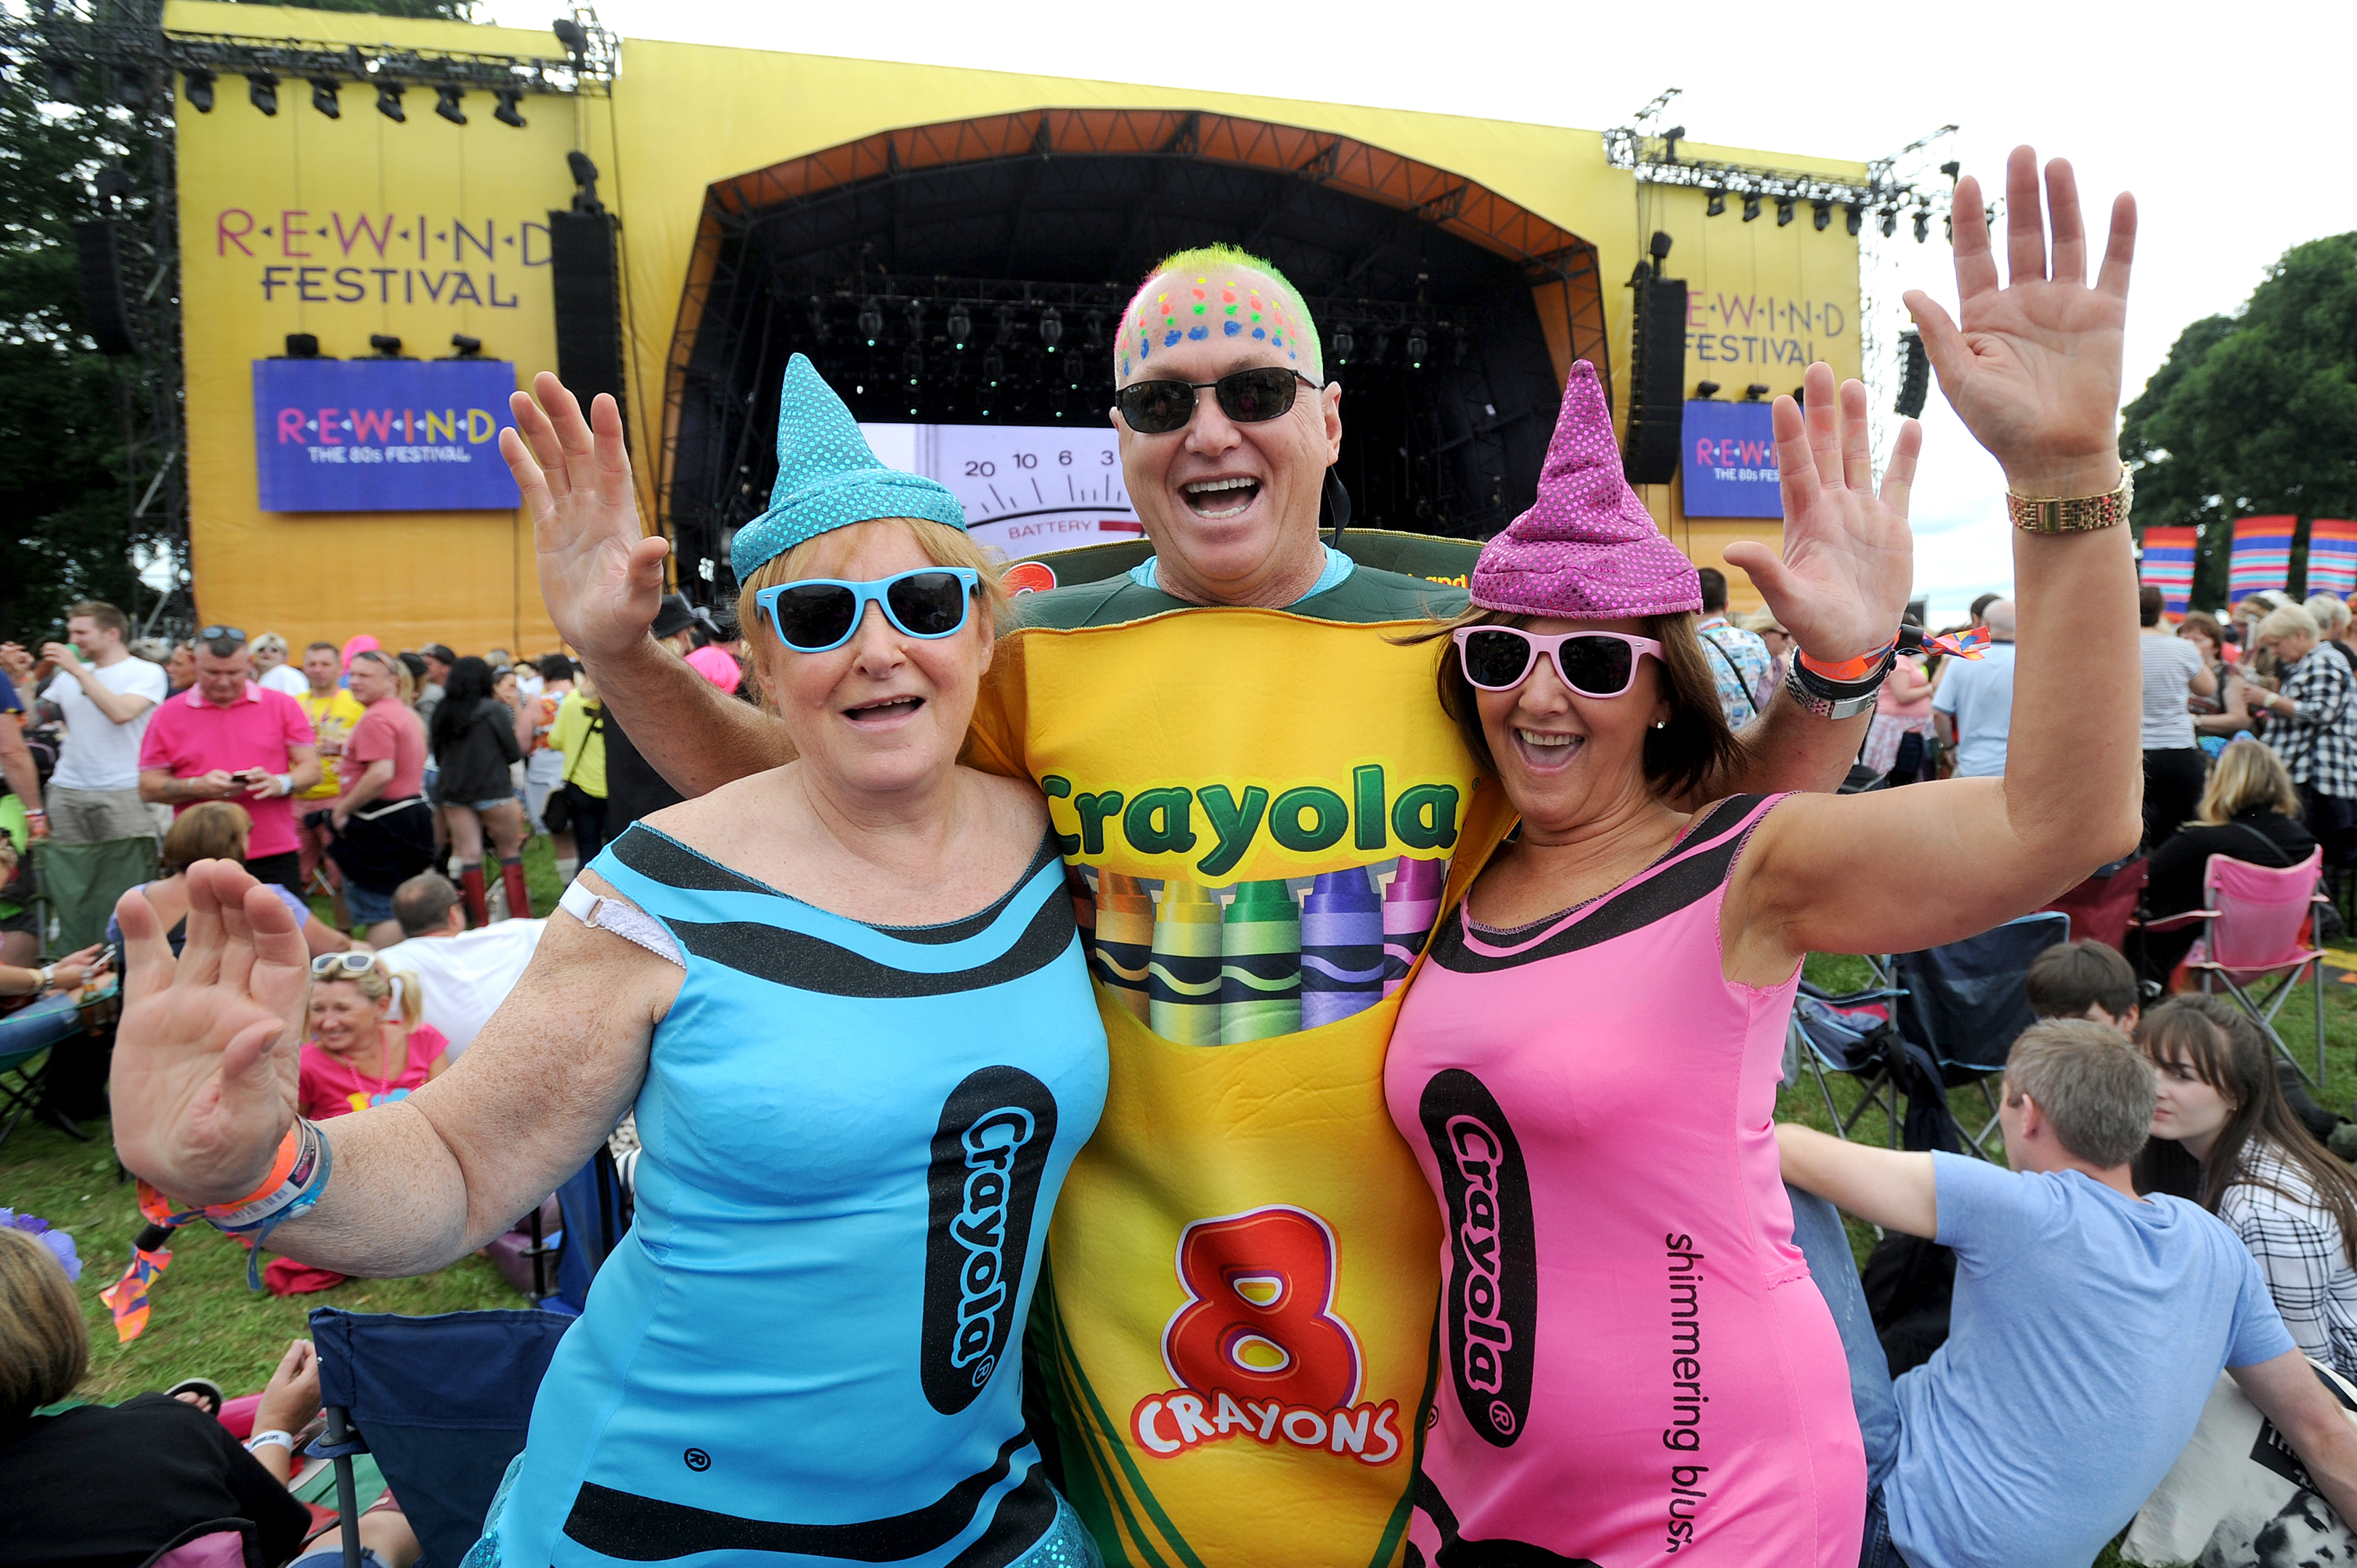 The annual Rewind music festival Saturday where 80's music lovers enjoyed the weekend. L to R - Liz McGuiness, Howie Aitkinson and Marion Aitken (Kim Cessford / DC Thomson)